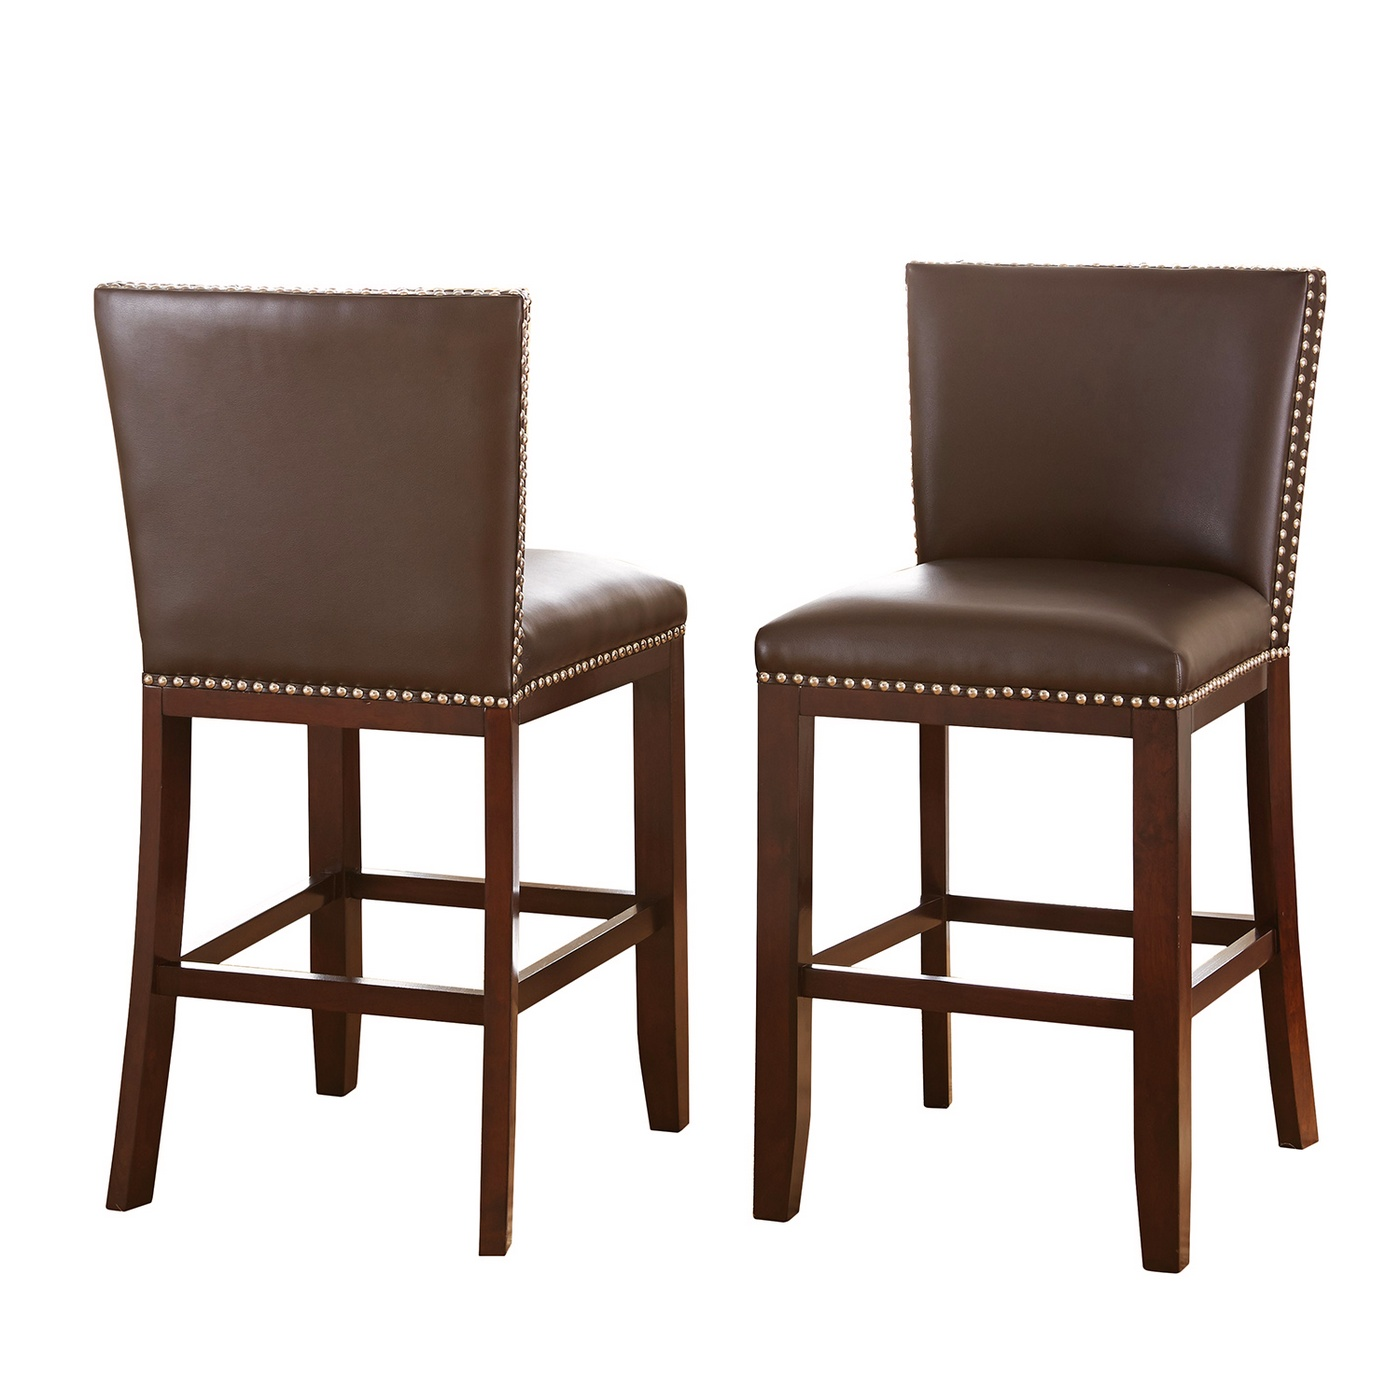 Modern Counter Height Stools Set Of 2 Tiffany Modern Hardwood Brown Vinyl Counter